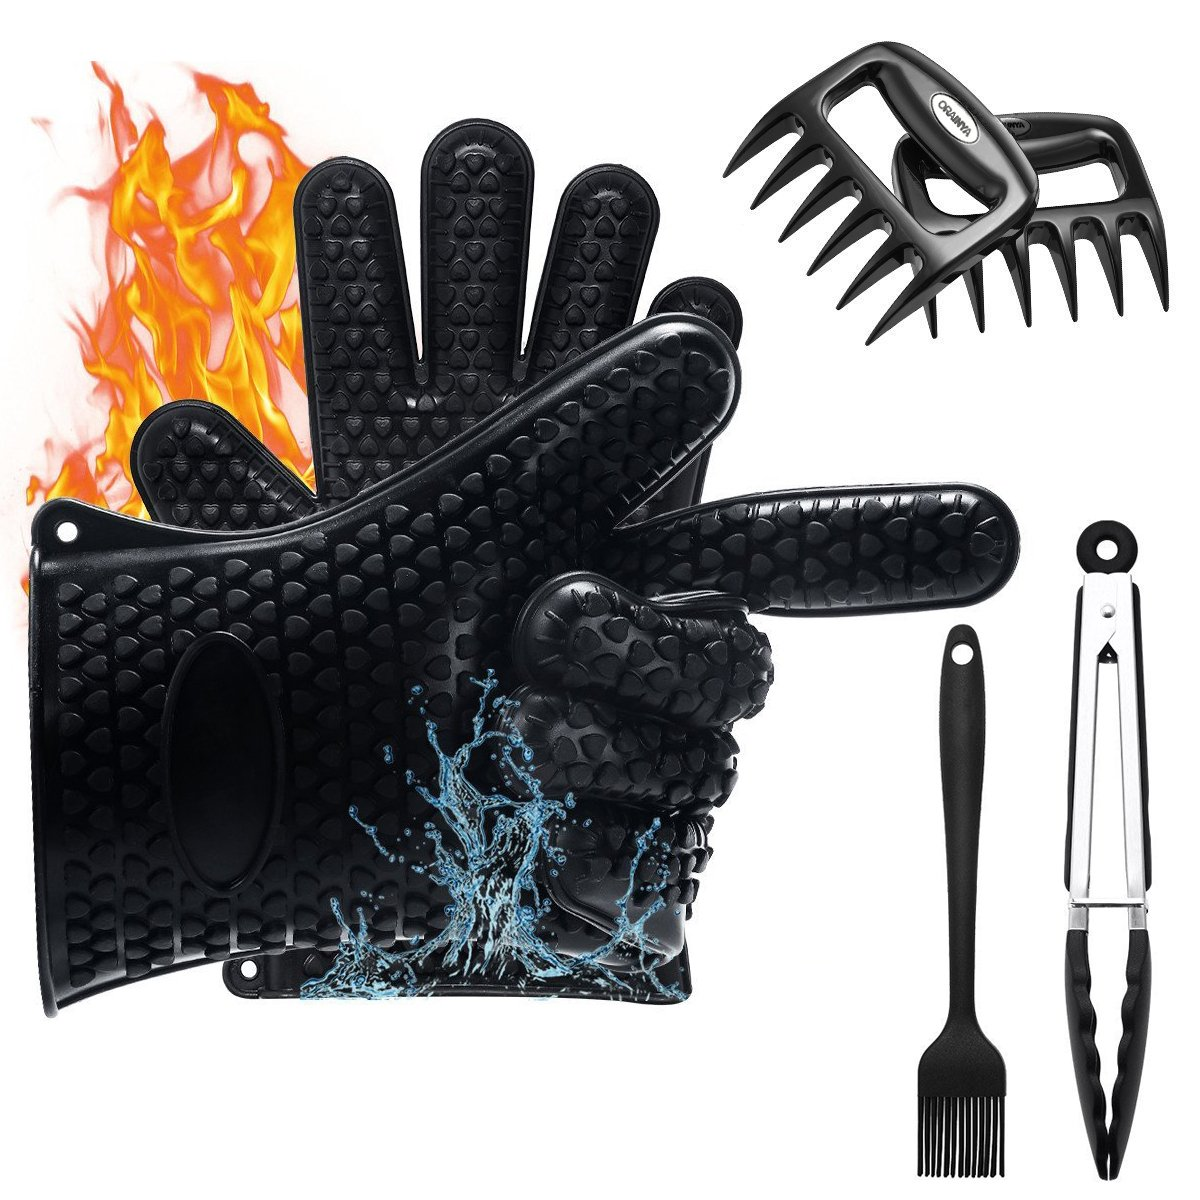 Orainya Silicone BBQ Gloves BBQ Grill Tool Set Meat Claws BBQ Meat Gloves Kitchen Tong BBQ Grill Brush Indoor Outdoor Grilling